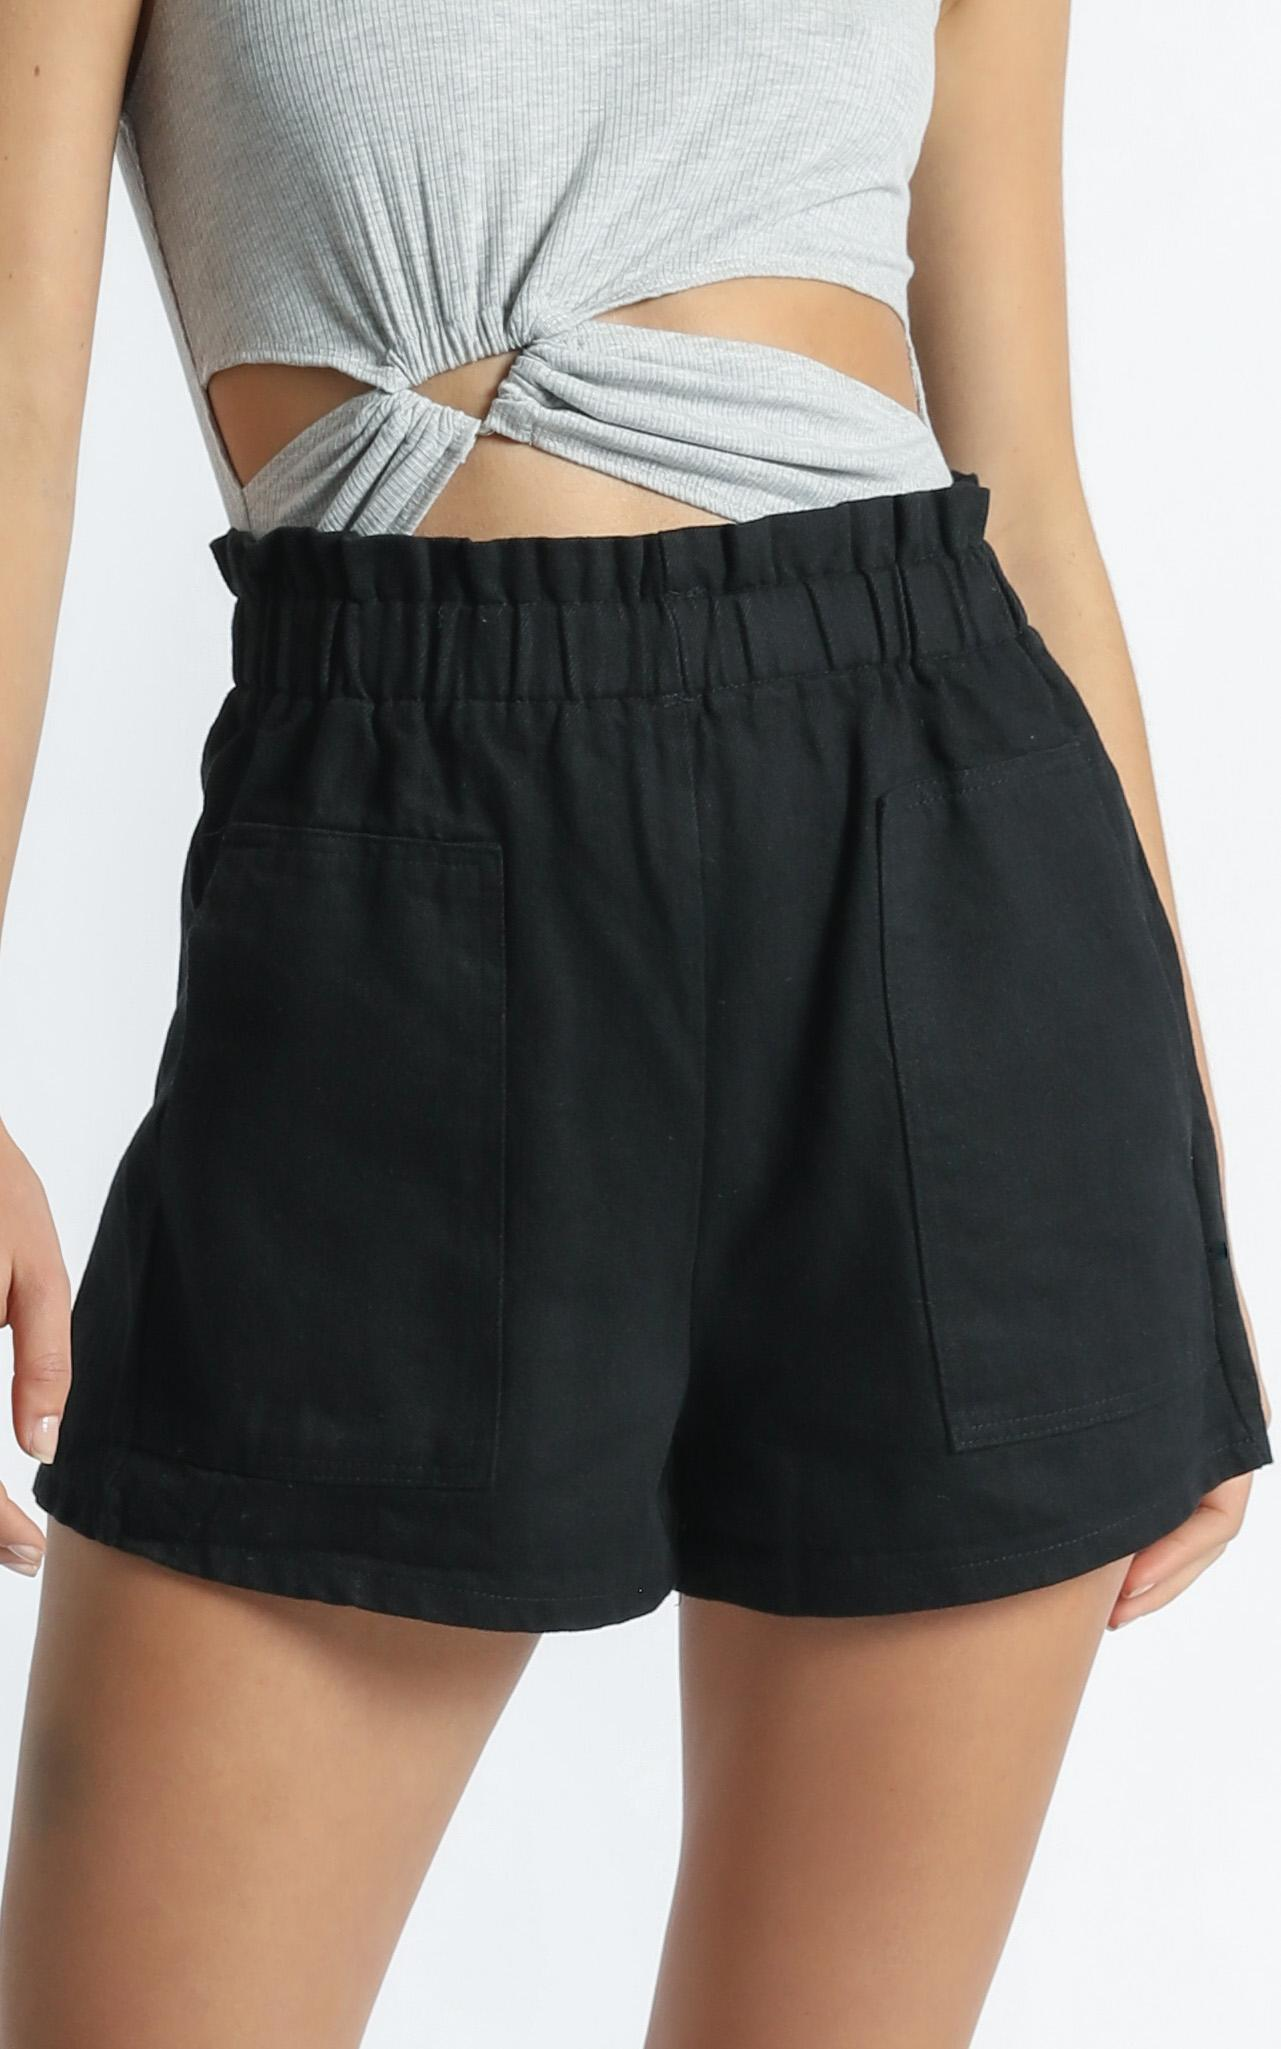 Tell A Friend Shorts in Black - 6 (XS), Black, hi-res image number null